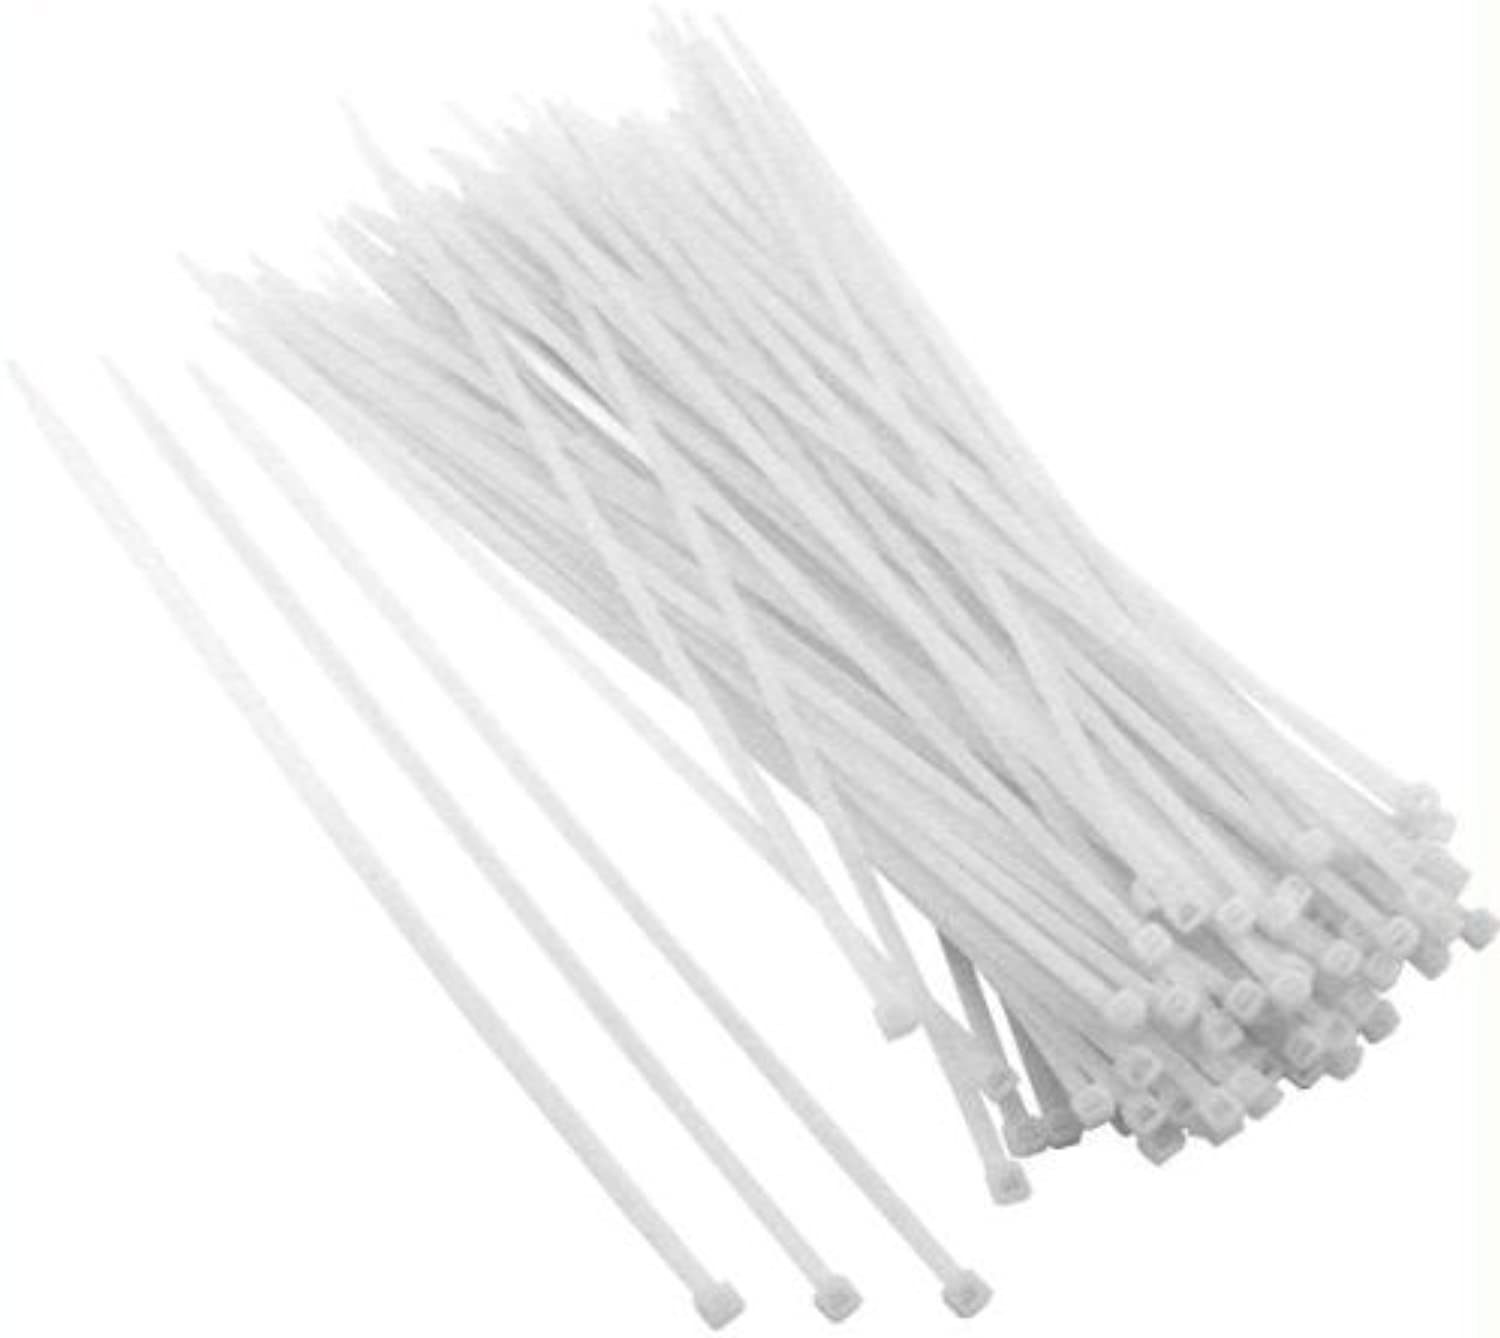 SE CT31920N Heavy-Duty 36  Weiß Cable Ties with 175-lb. Tensile Strength, 20-Pack by Sona Enterprises B0186KAT24 | Sorgfältig ausgewählte Materialien